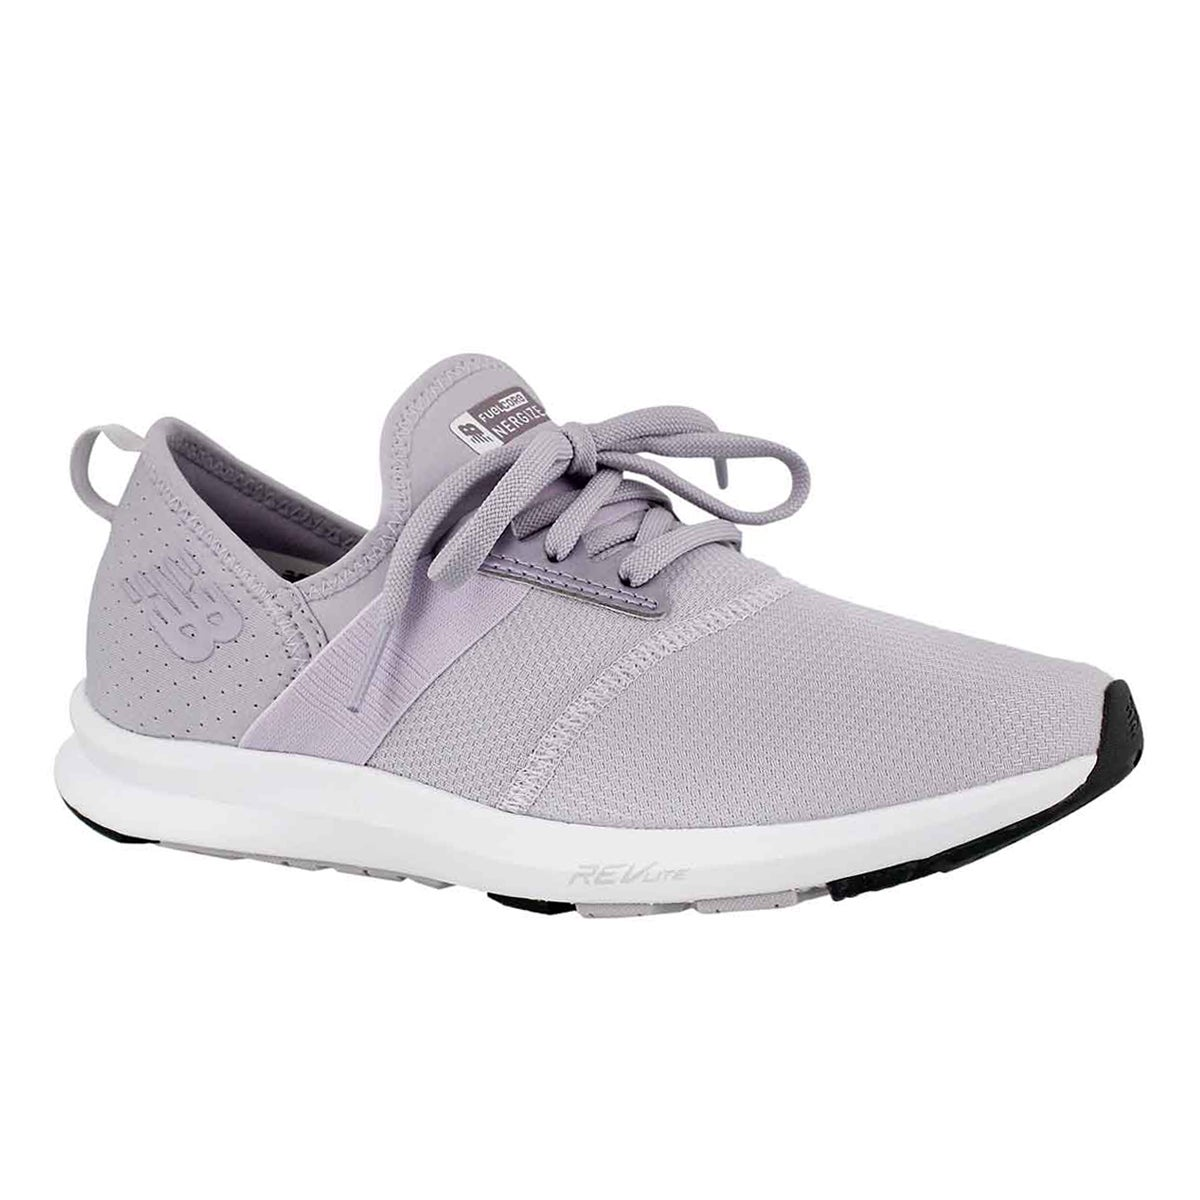 Women's FUELCORE thistle/white lace up sneakers